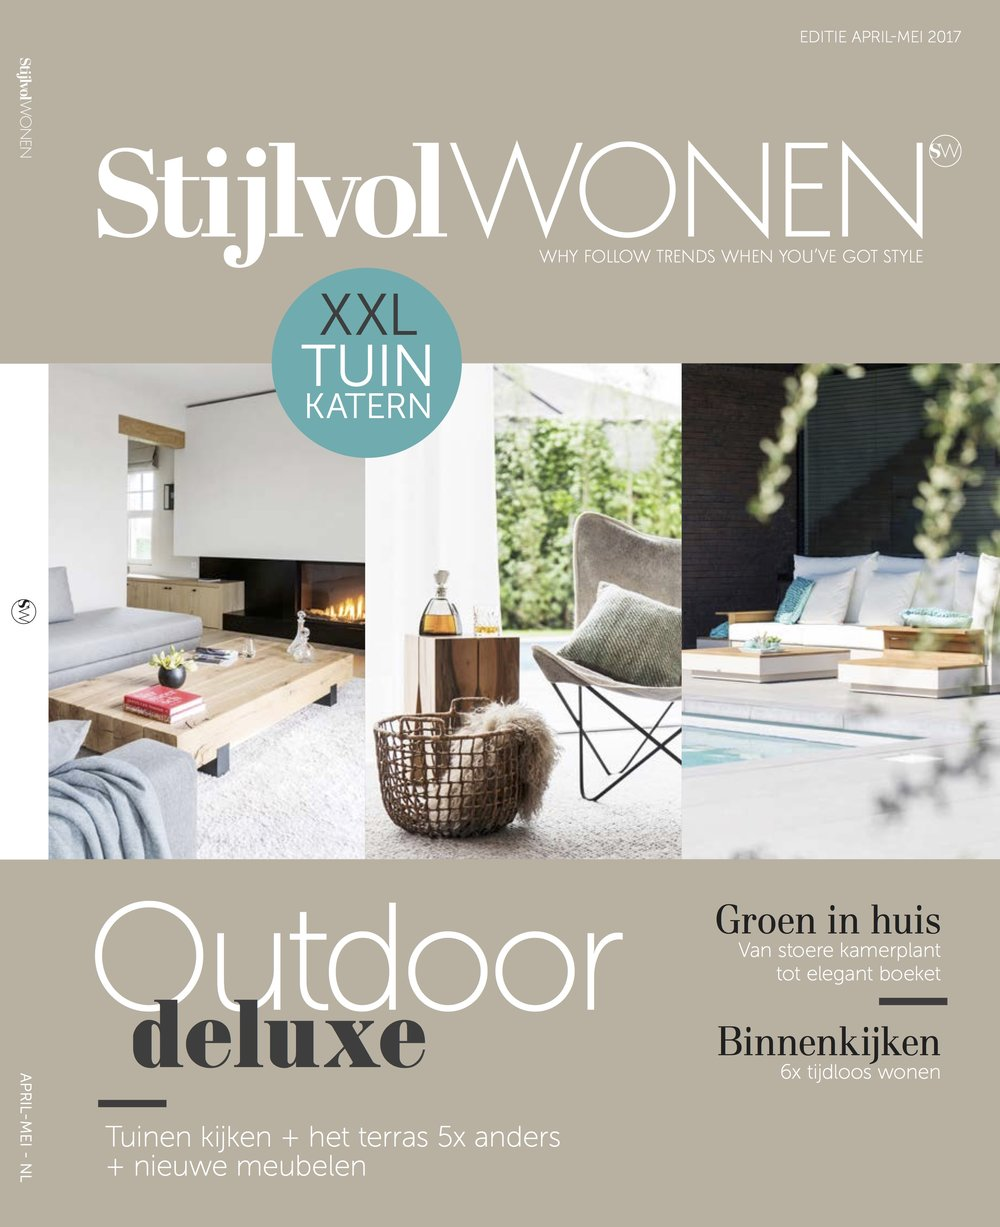 Luxurious estate surrounded by nature - Stijlvol wonen, April - May 2017